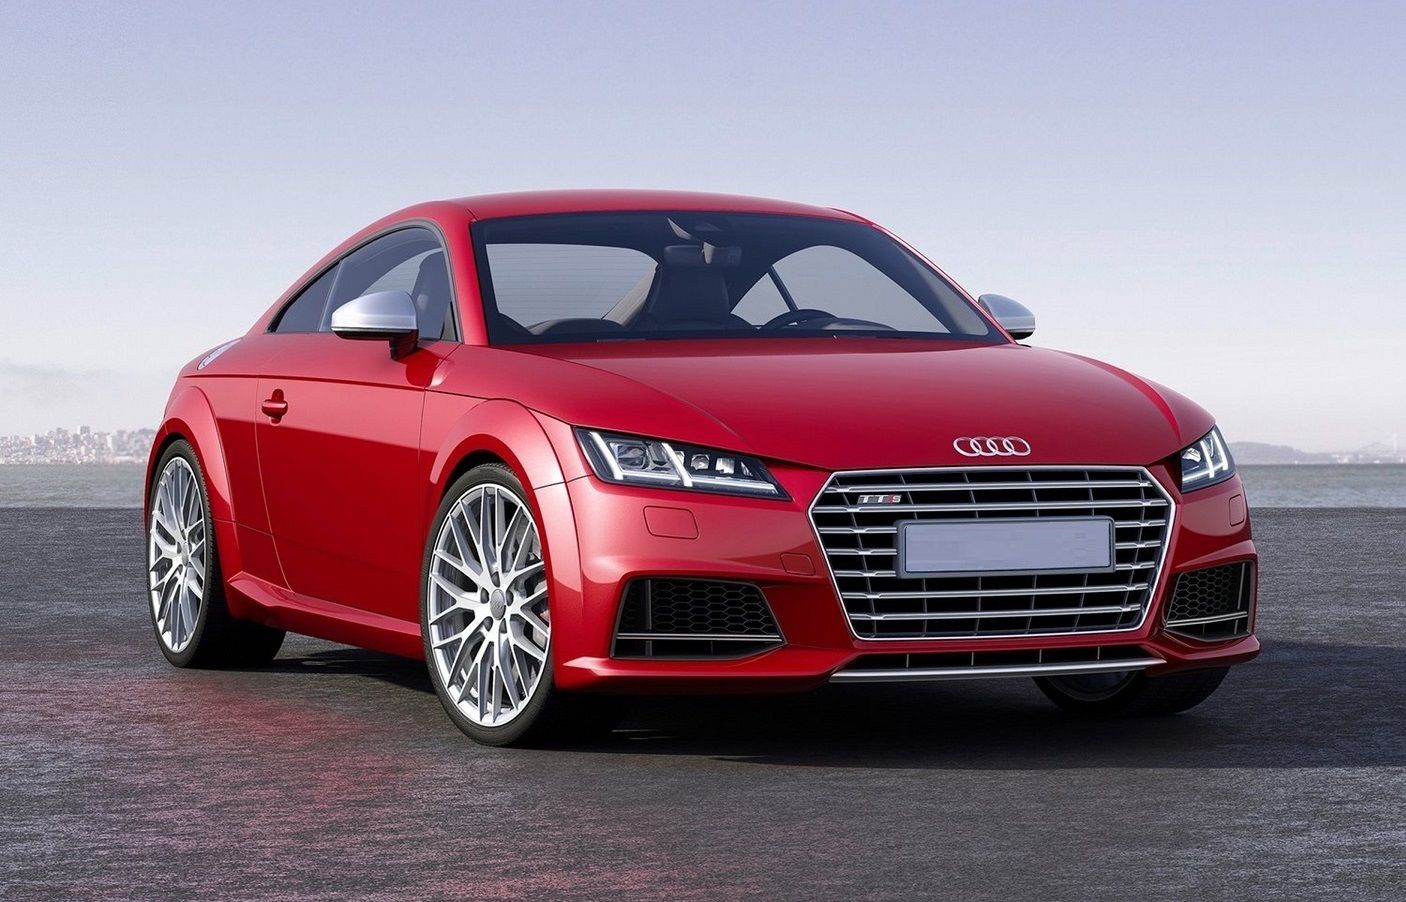 Audi TTS Coupe Door Sports Cars For Sale Get Great Prices On Audi - 2 door audi